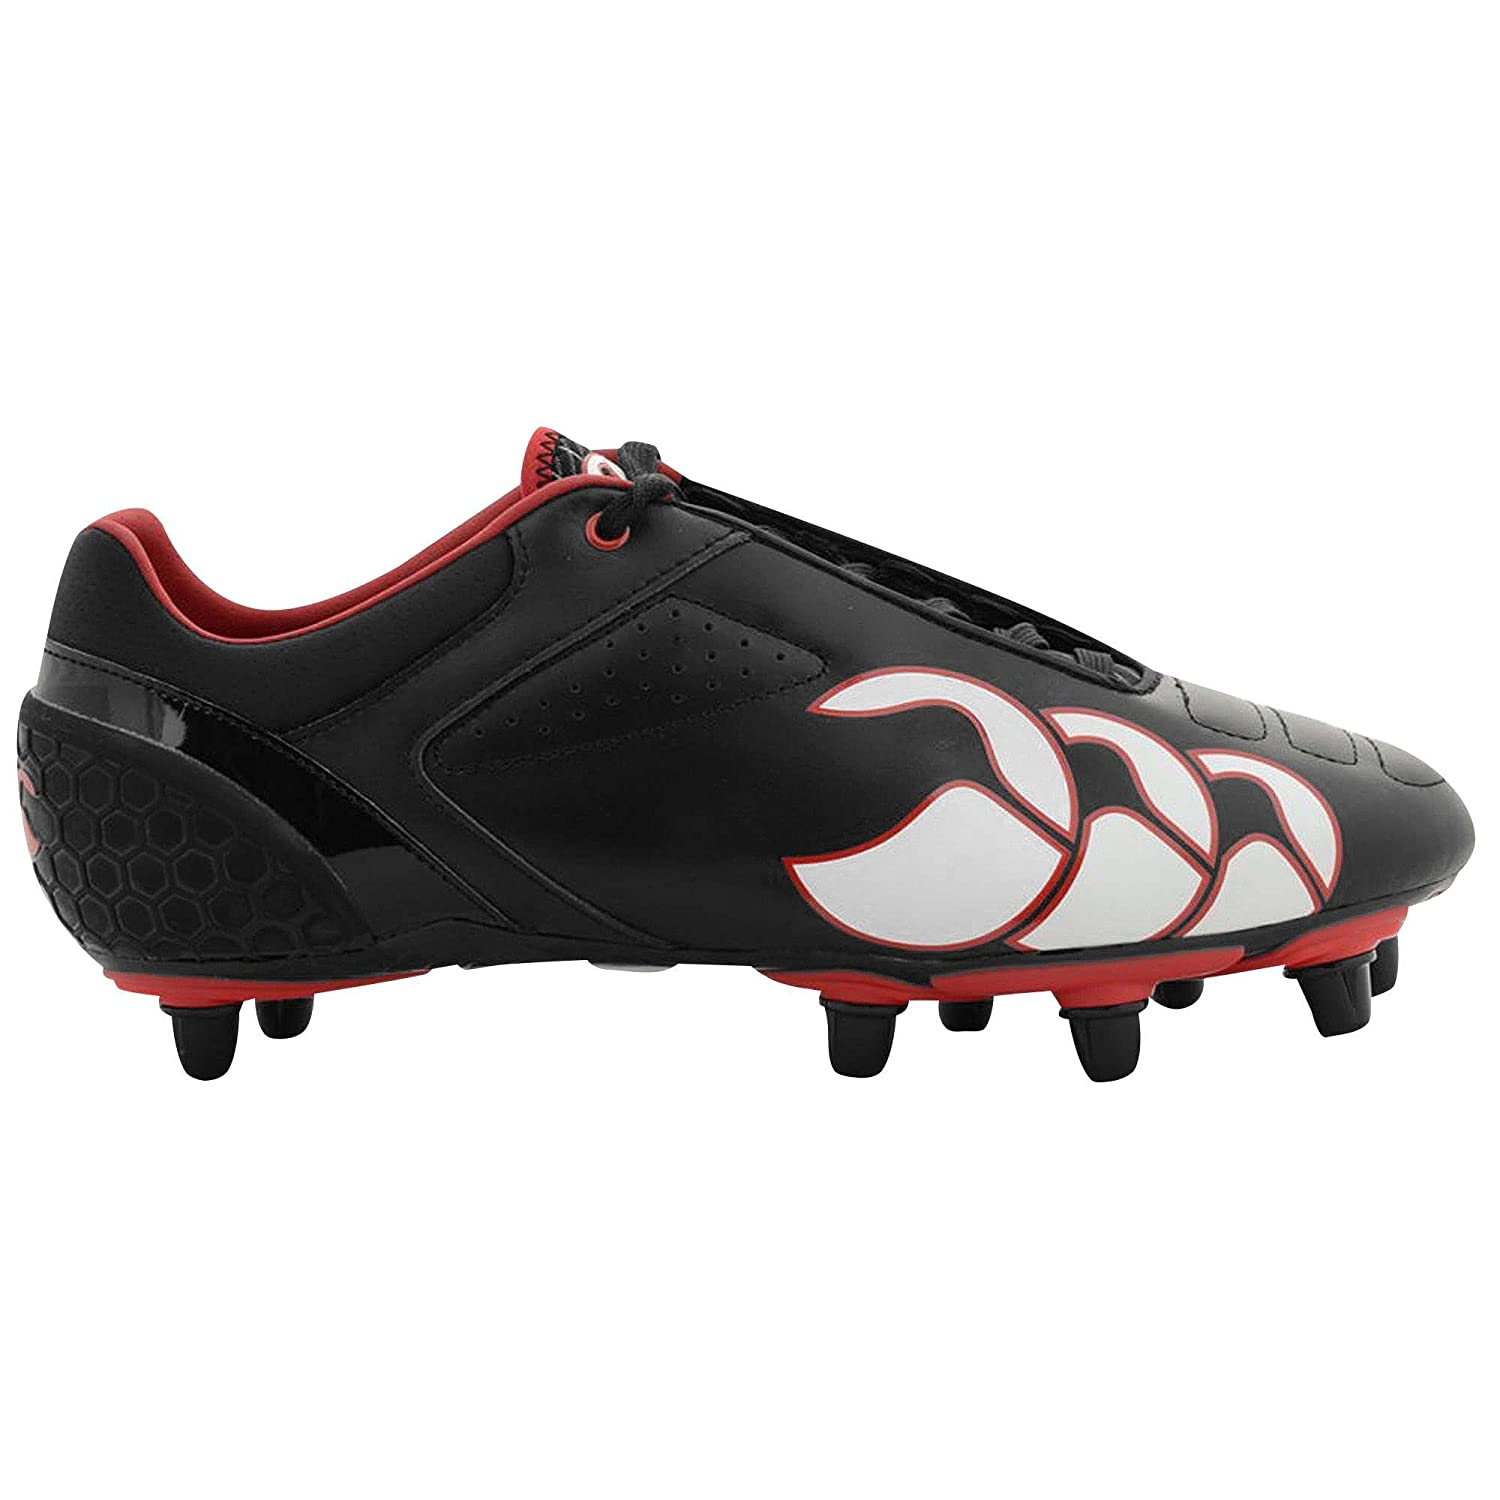 Canterburry Unisex-Adult Phoenix Elite Rugby Boots